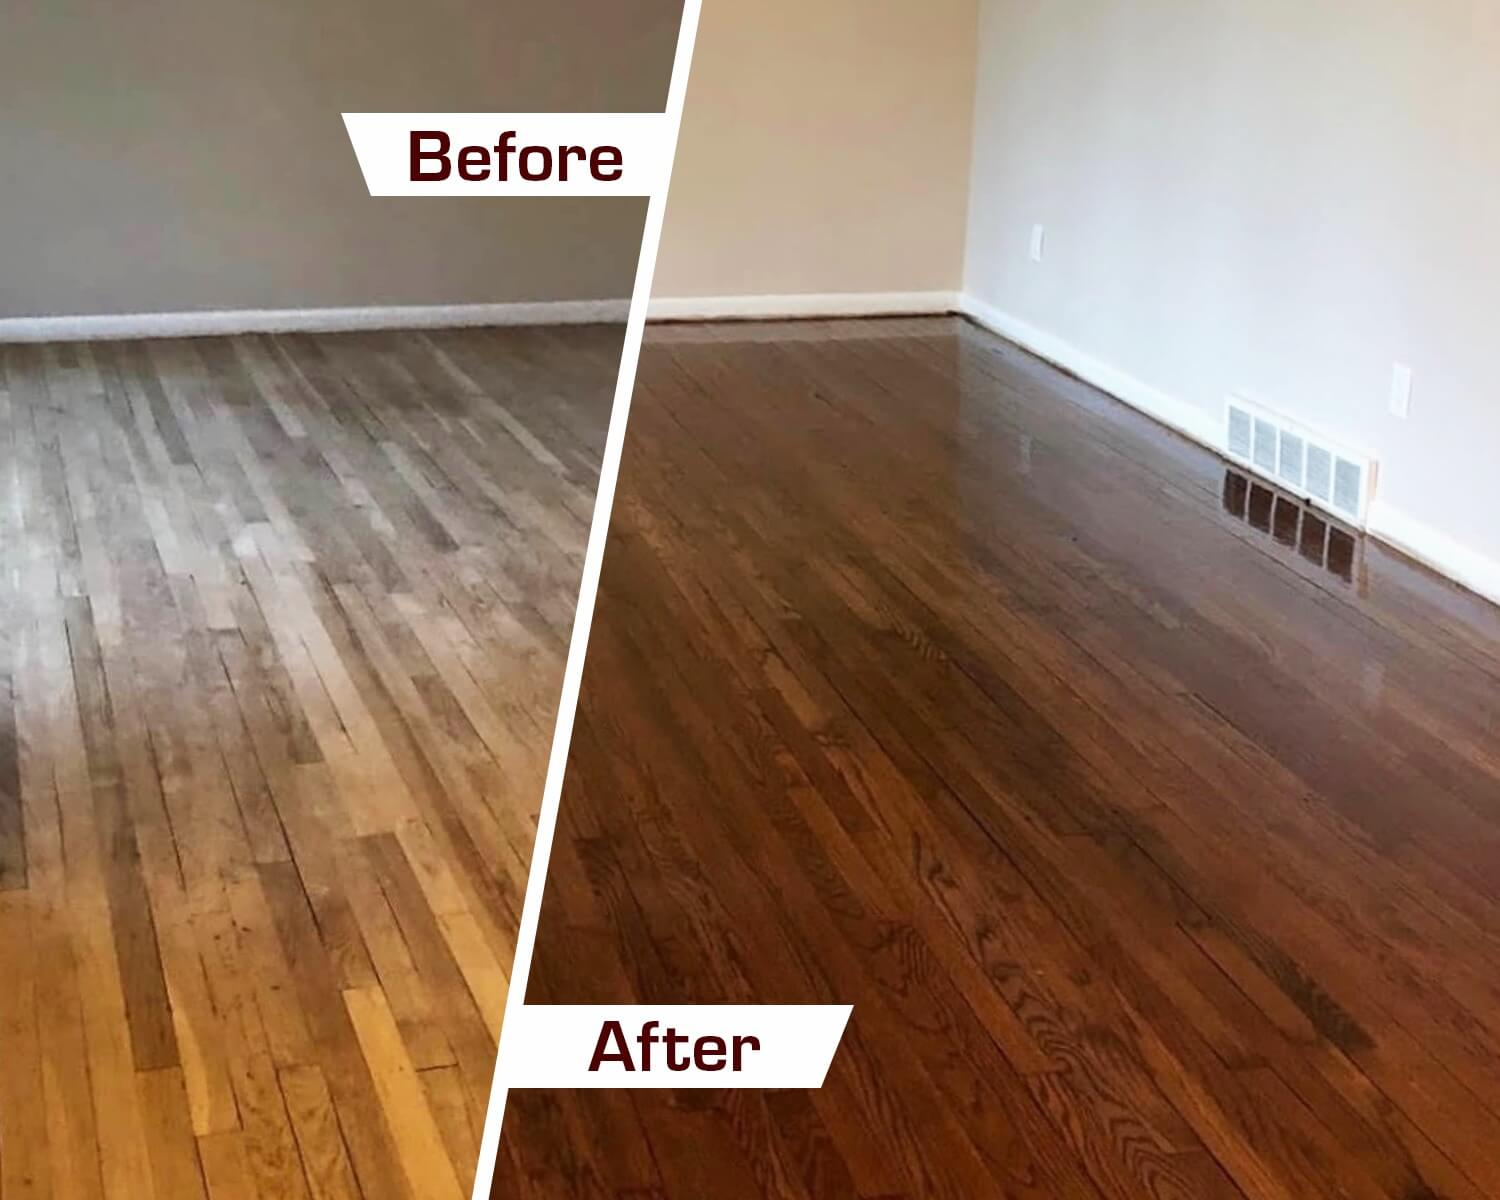 Hadwood floor refinishing before and after in north, central, and south jersey